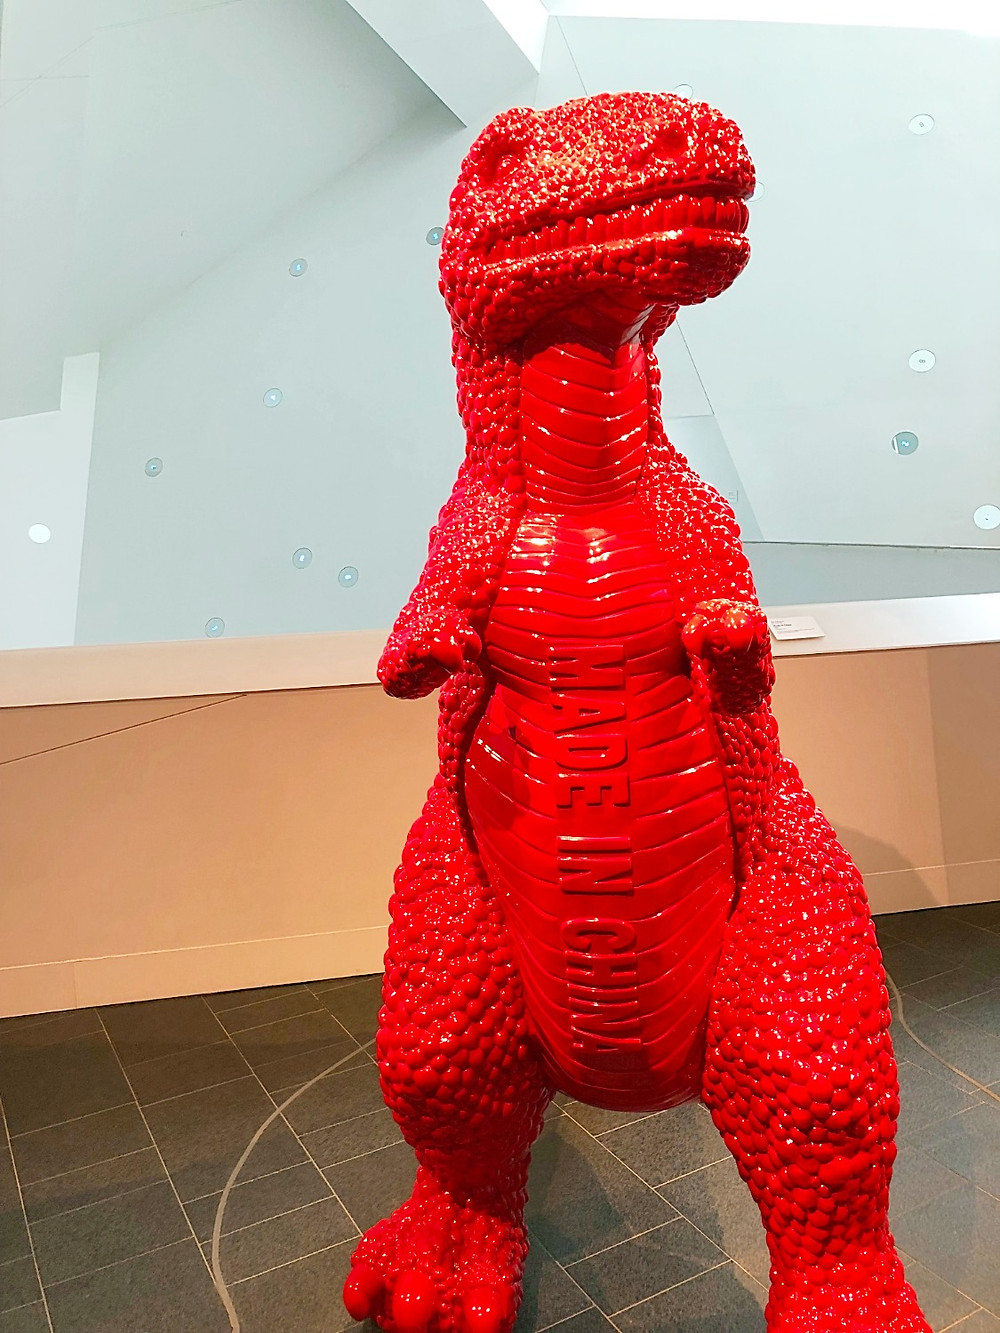 Denver with kids, Red Rocks Park, hiking with kids, family travel, Colorado with kids, FTW, kids in arcades, 16th Street Mall with kids, Denver with kids, Denver Art Museum, Claes Oldenburg, Denver Art Museum with kids, Can Can, Yayoi Kusama, Stampede: Animals in Art